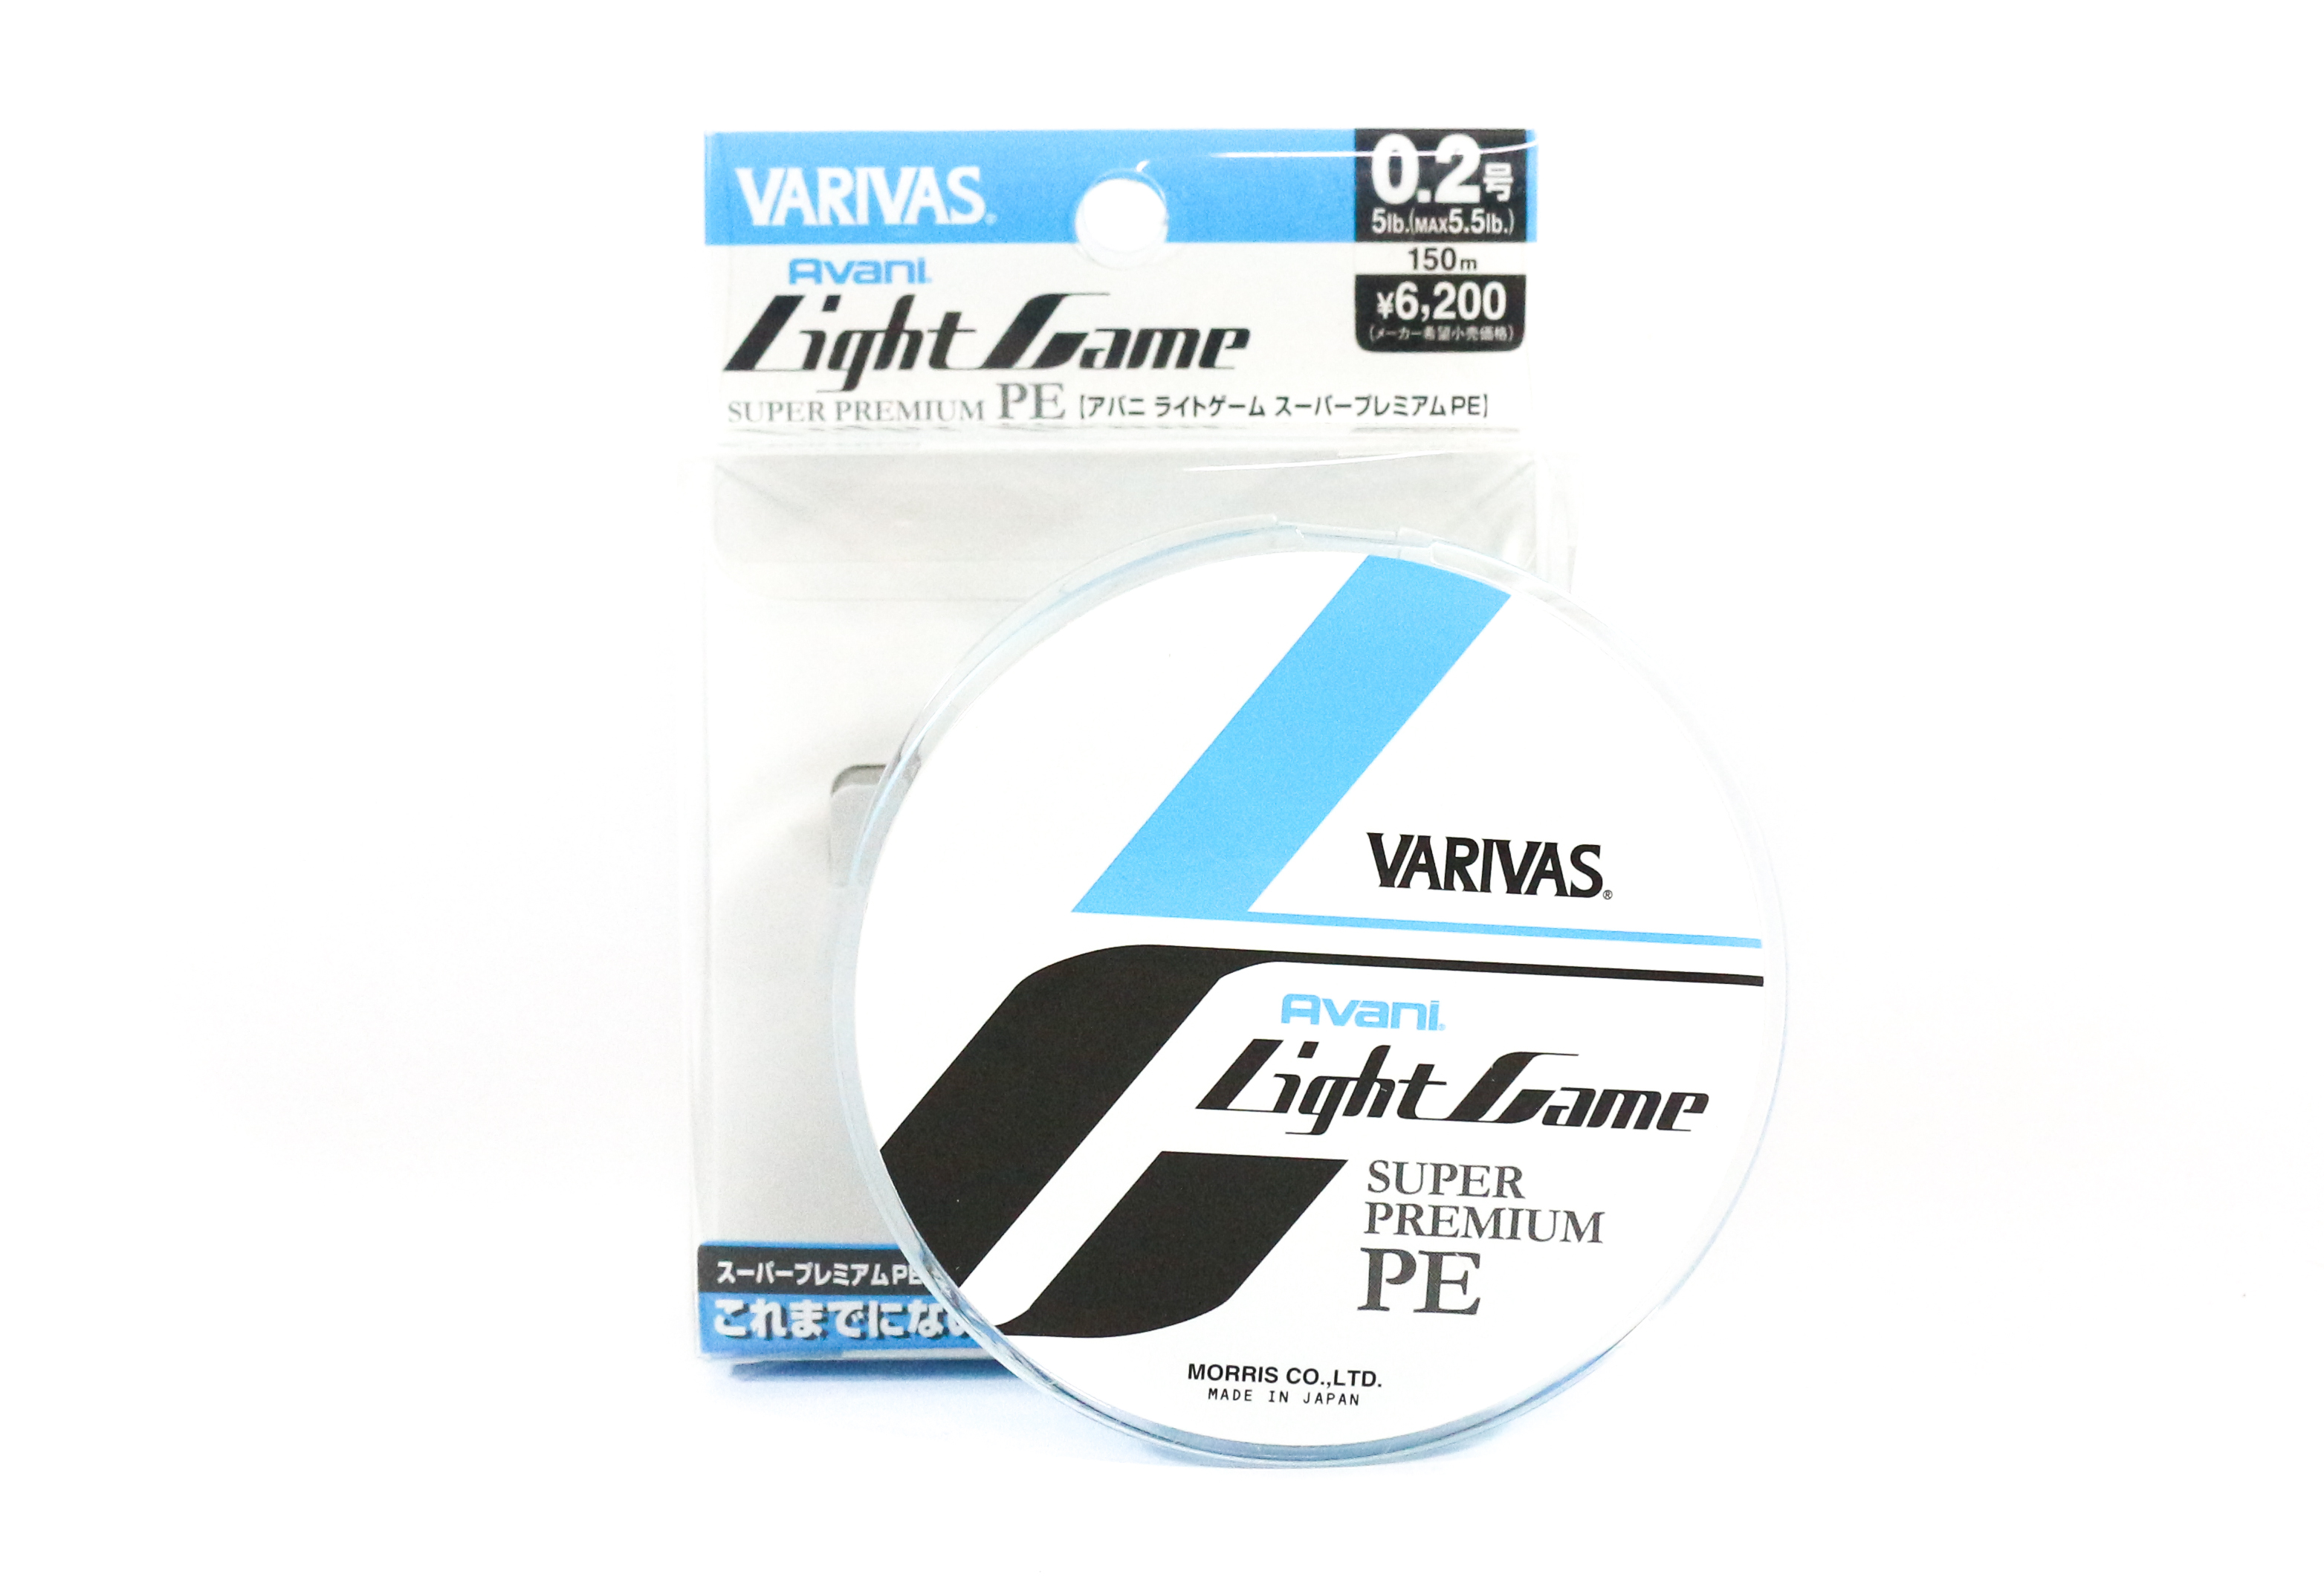 Sale Varivas P.E Line Light Game Super Premium 150m P.E 0.2 5.5lb (4928)